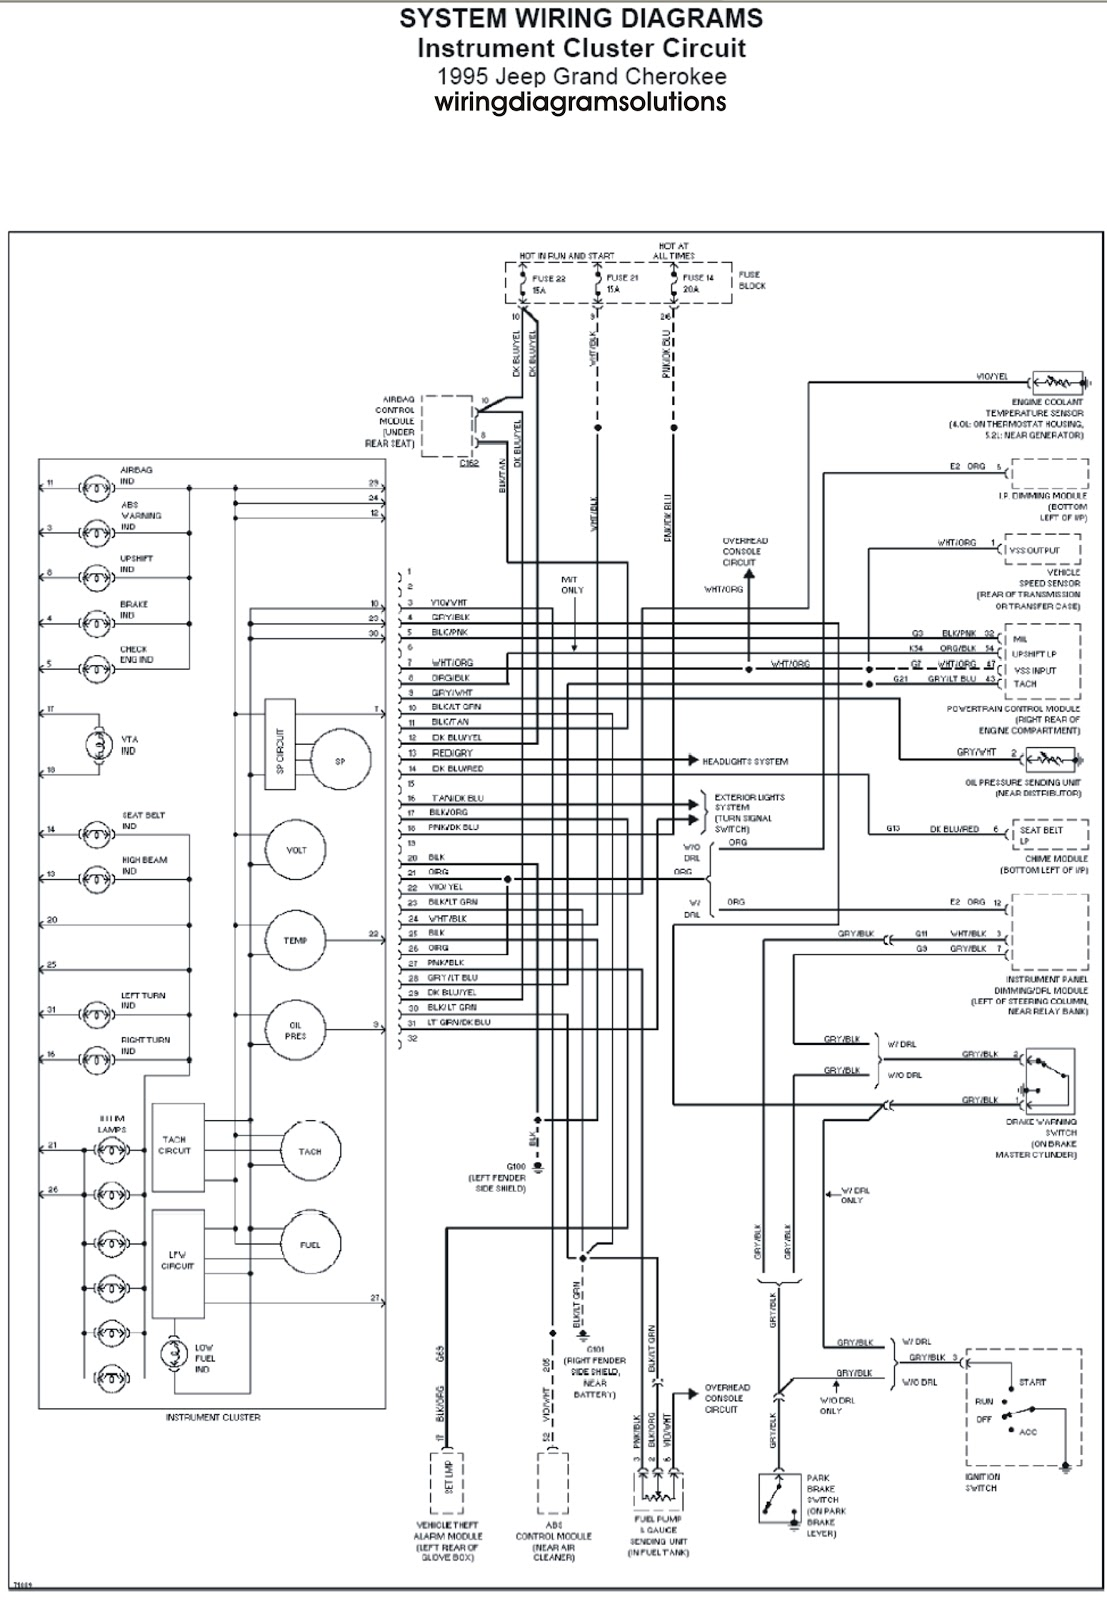 wiring diagram 95 jeep wrangler wiring diagram automotivejeep wrangler fuel wiring harness diagram data wiring diagram update